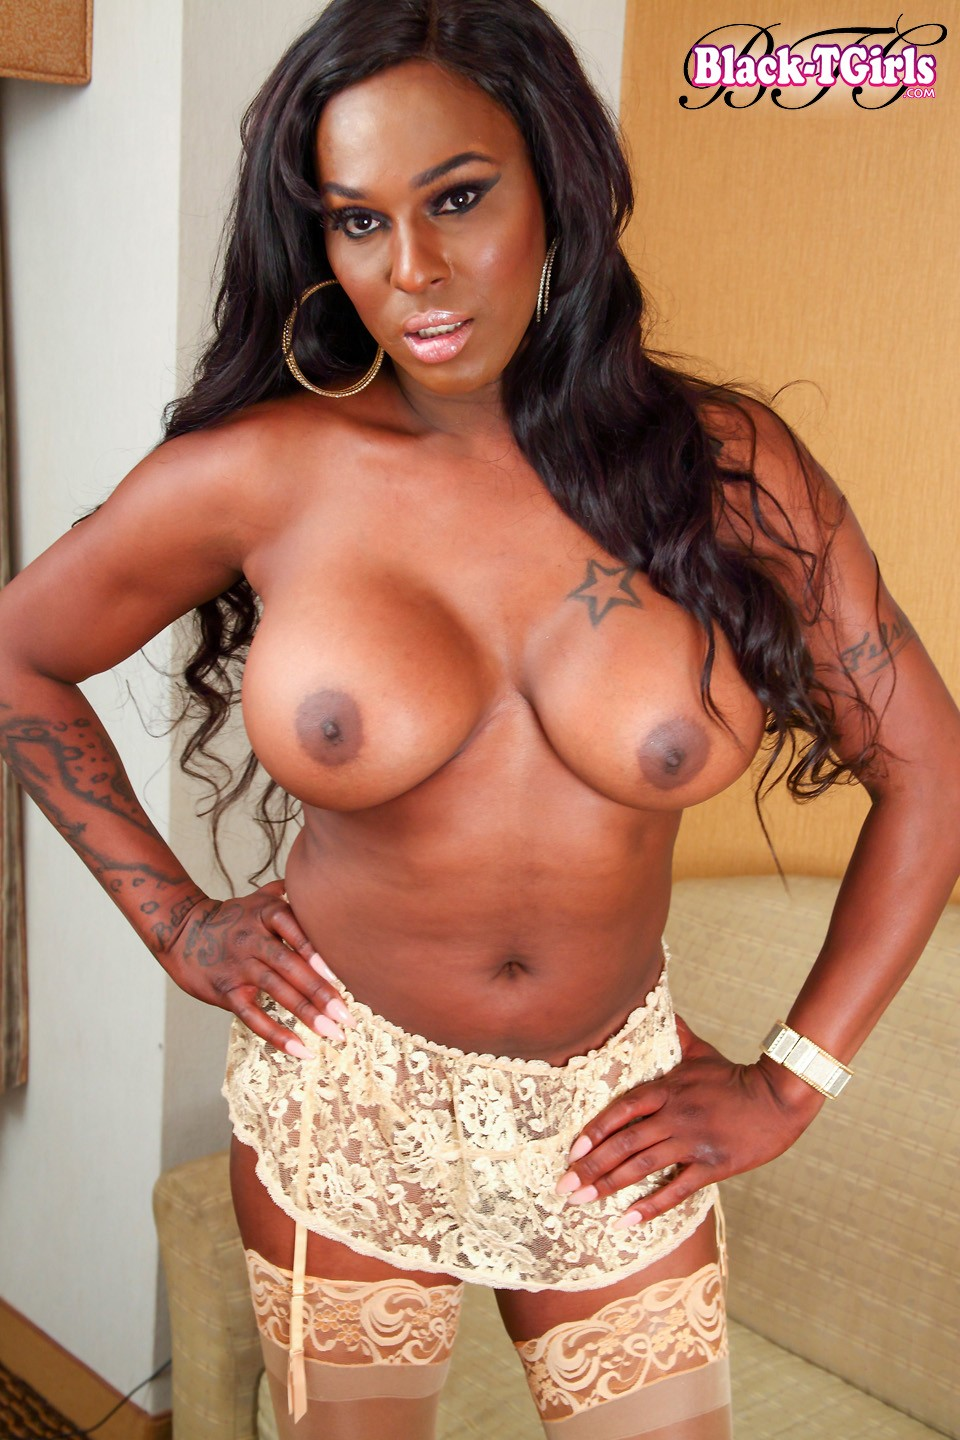 black tgirls sex big black dicks and big black tits